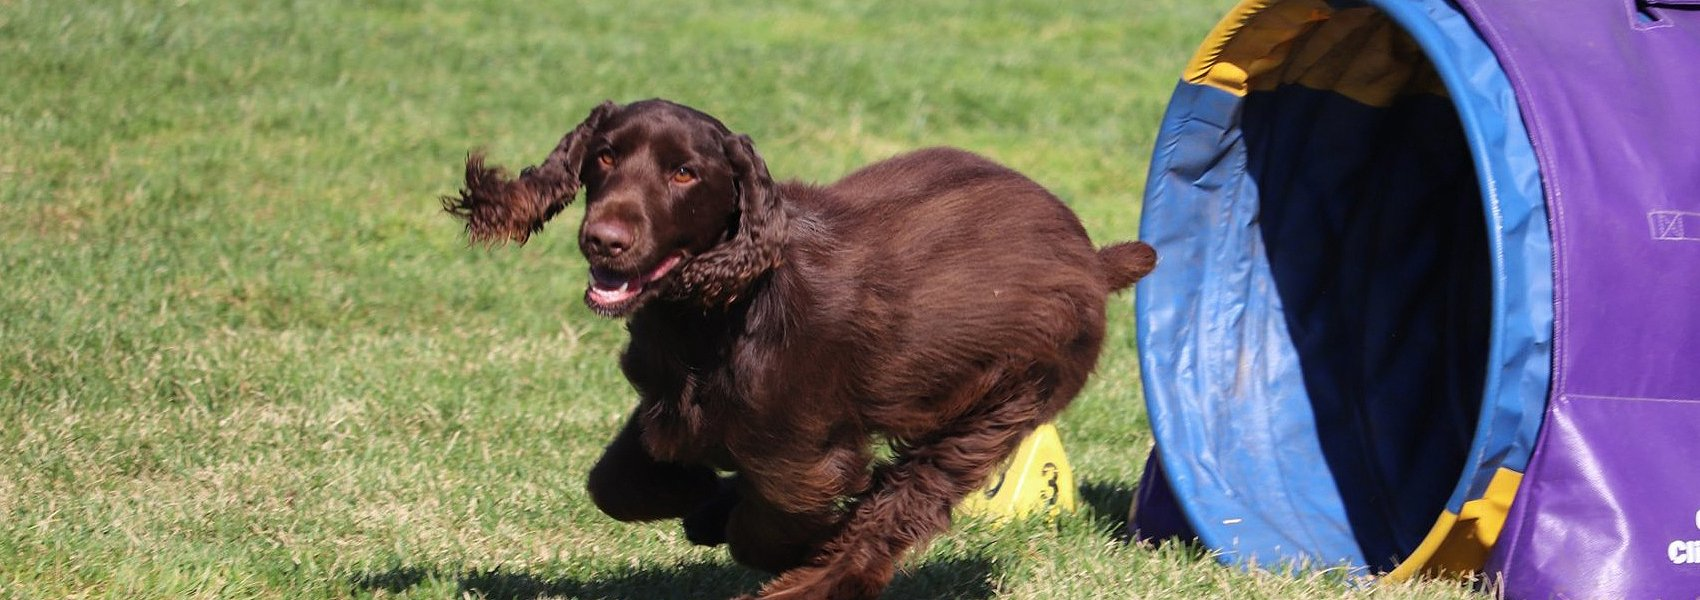 Field Spaniel competing in agility